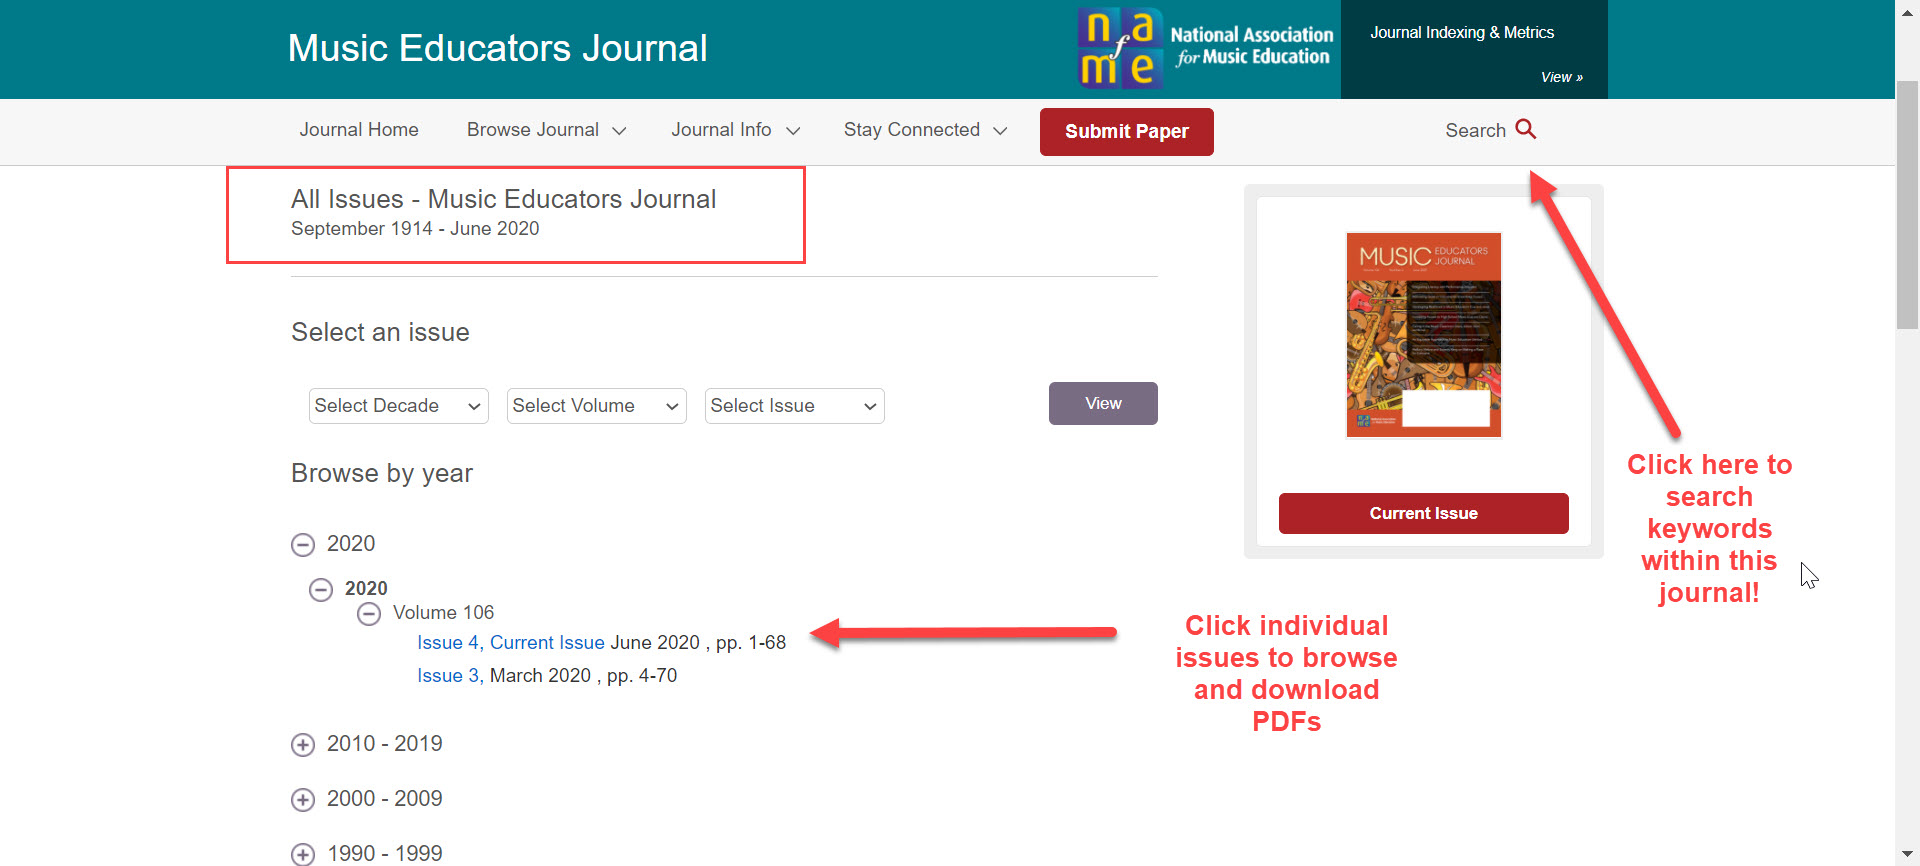 An image of the landing page for the Libraries SAGE Journals access to Music Educators Journal. The places to click for searching this title by keyword and browsing by issue are highlighted.